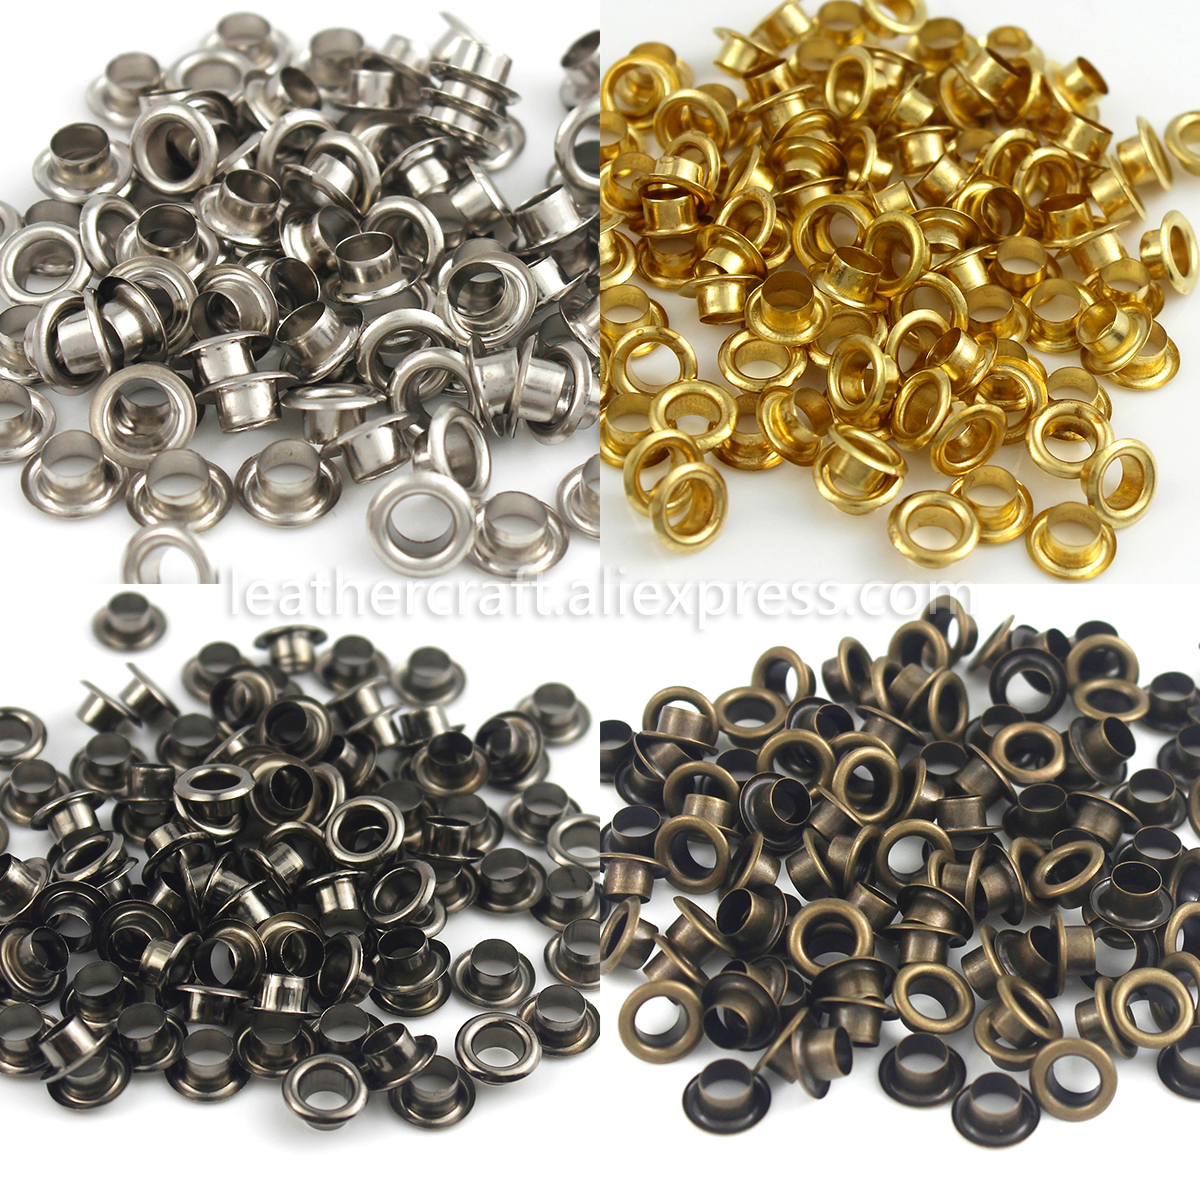 100pcs Sets Eyelet With Washer Leather DIY Craft Repair Metal Grommet 3.5mm-14mm